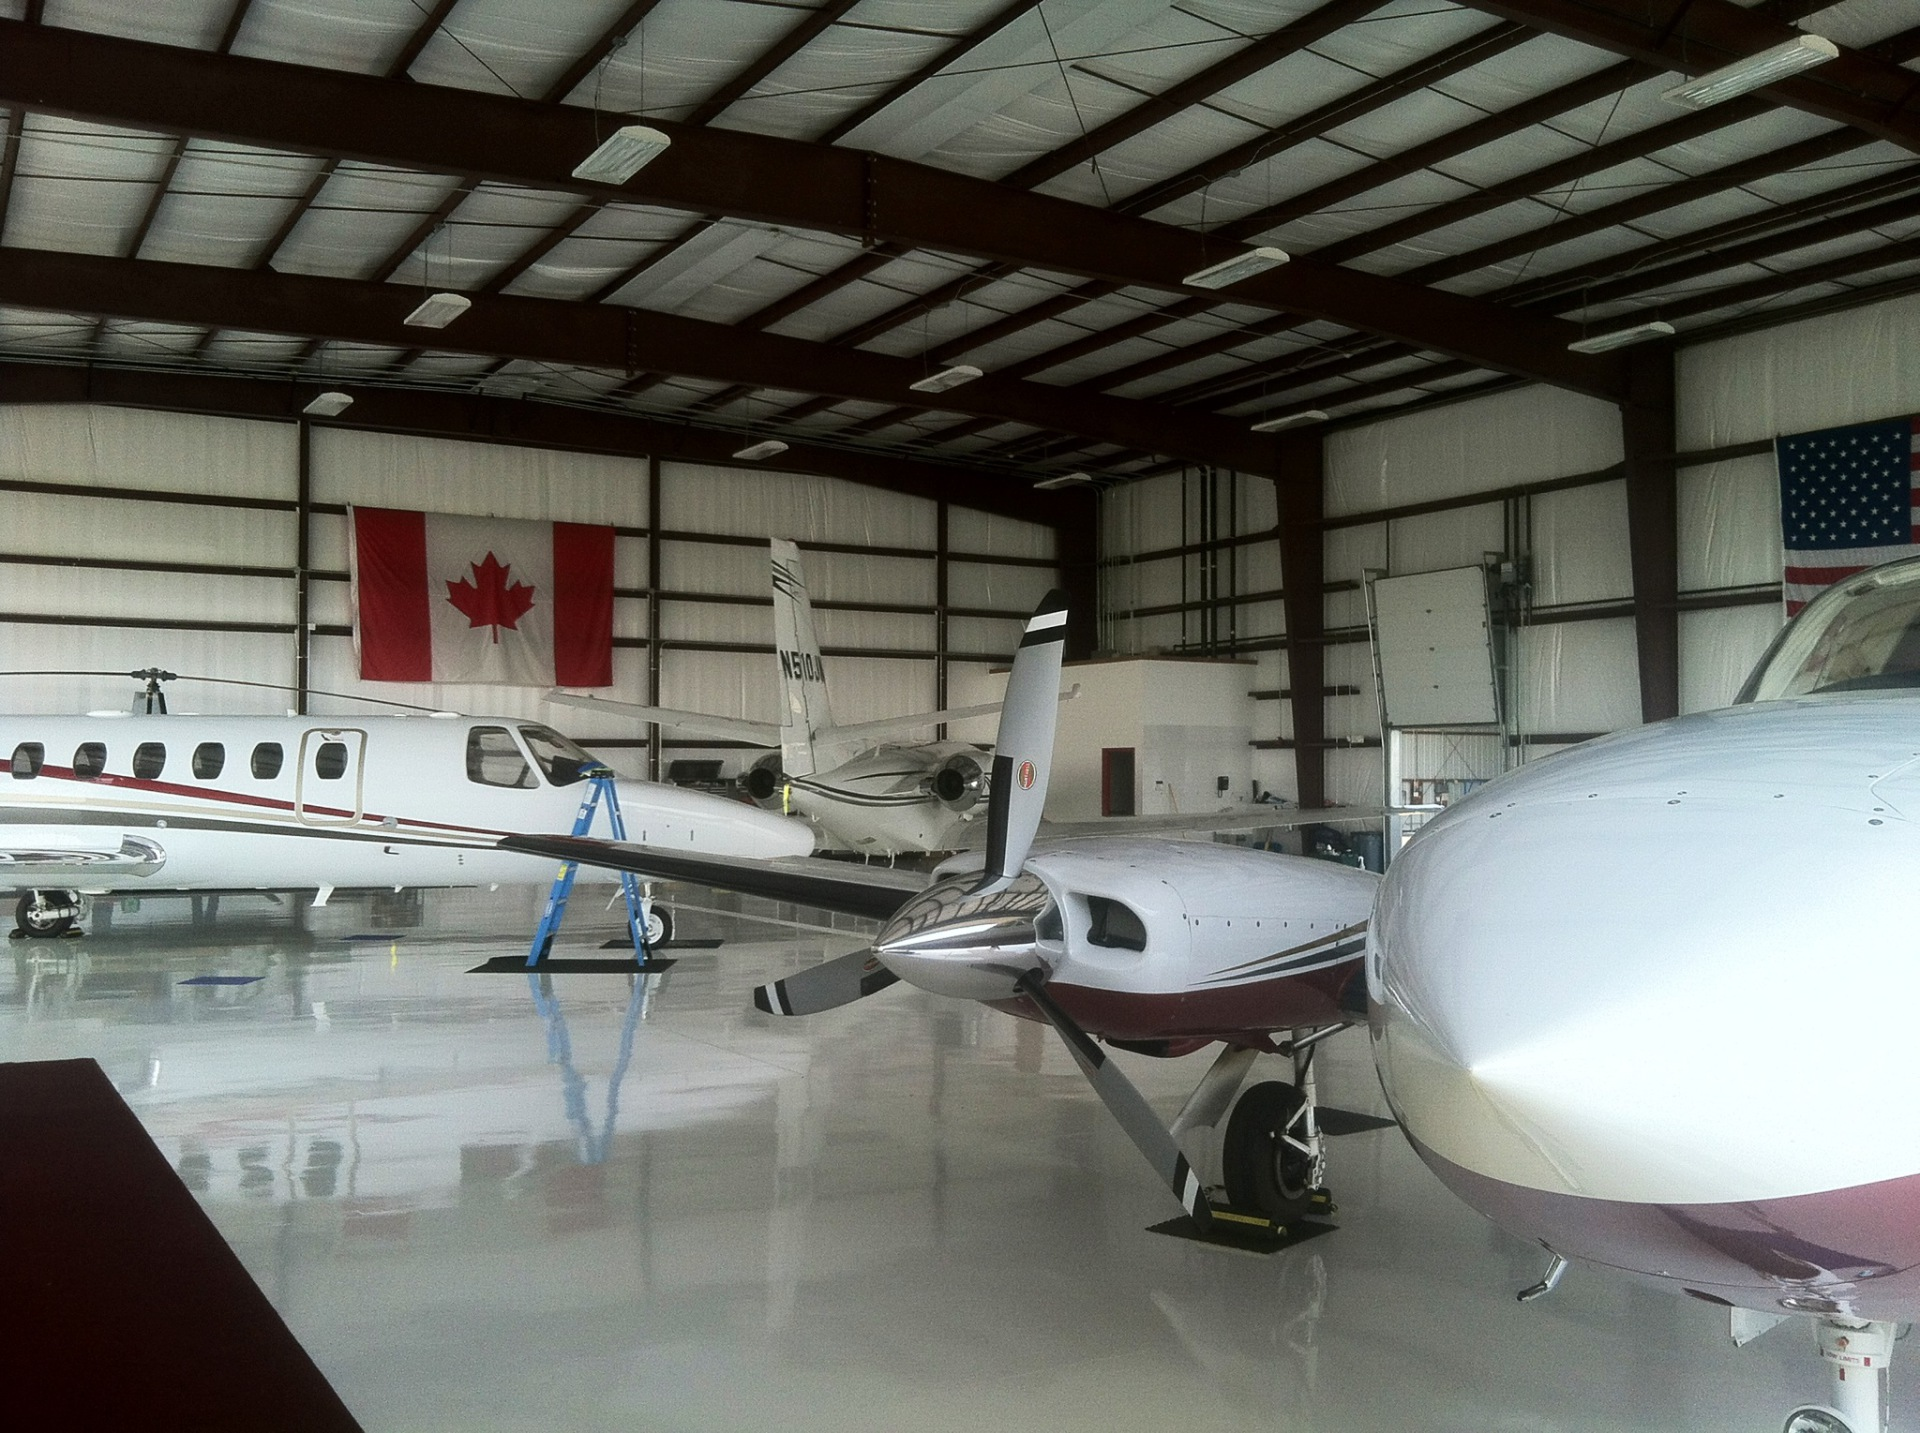 Marshfield Airport's Jet Hangar